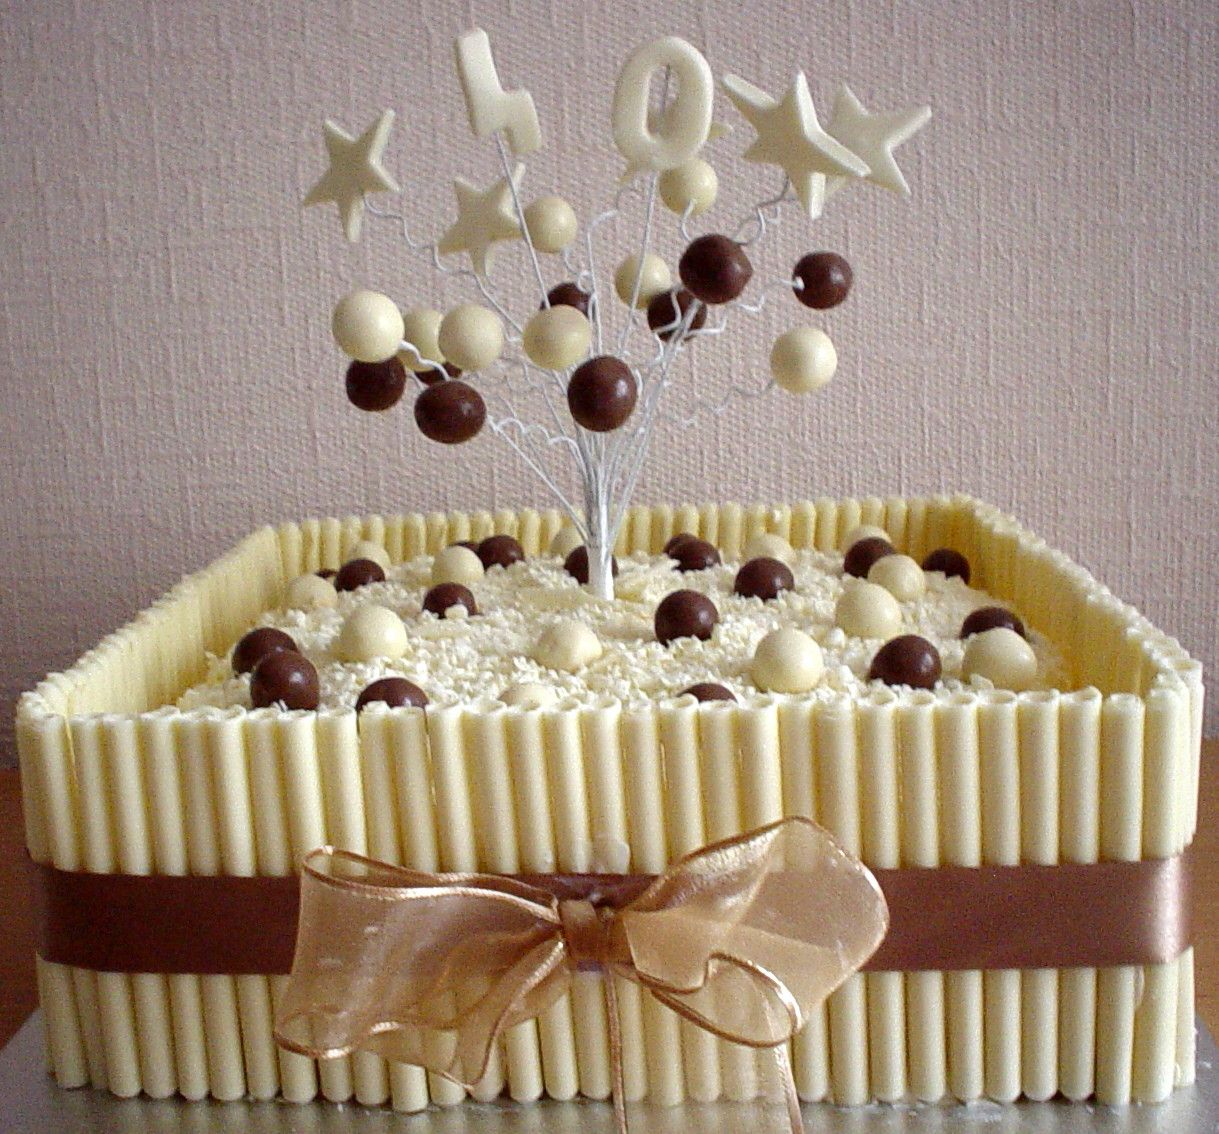 White chocolate cake | Cakes | Pinterest | White chocolate cake ...